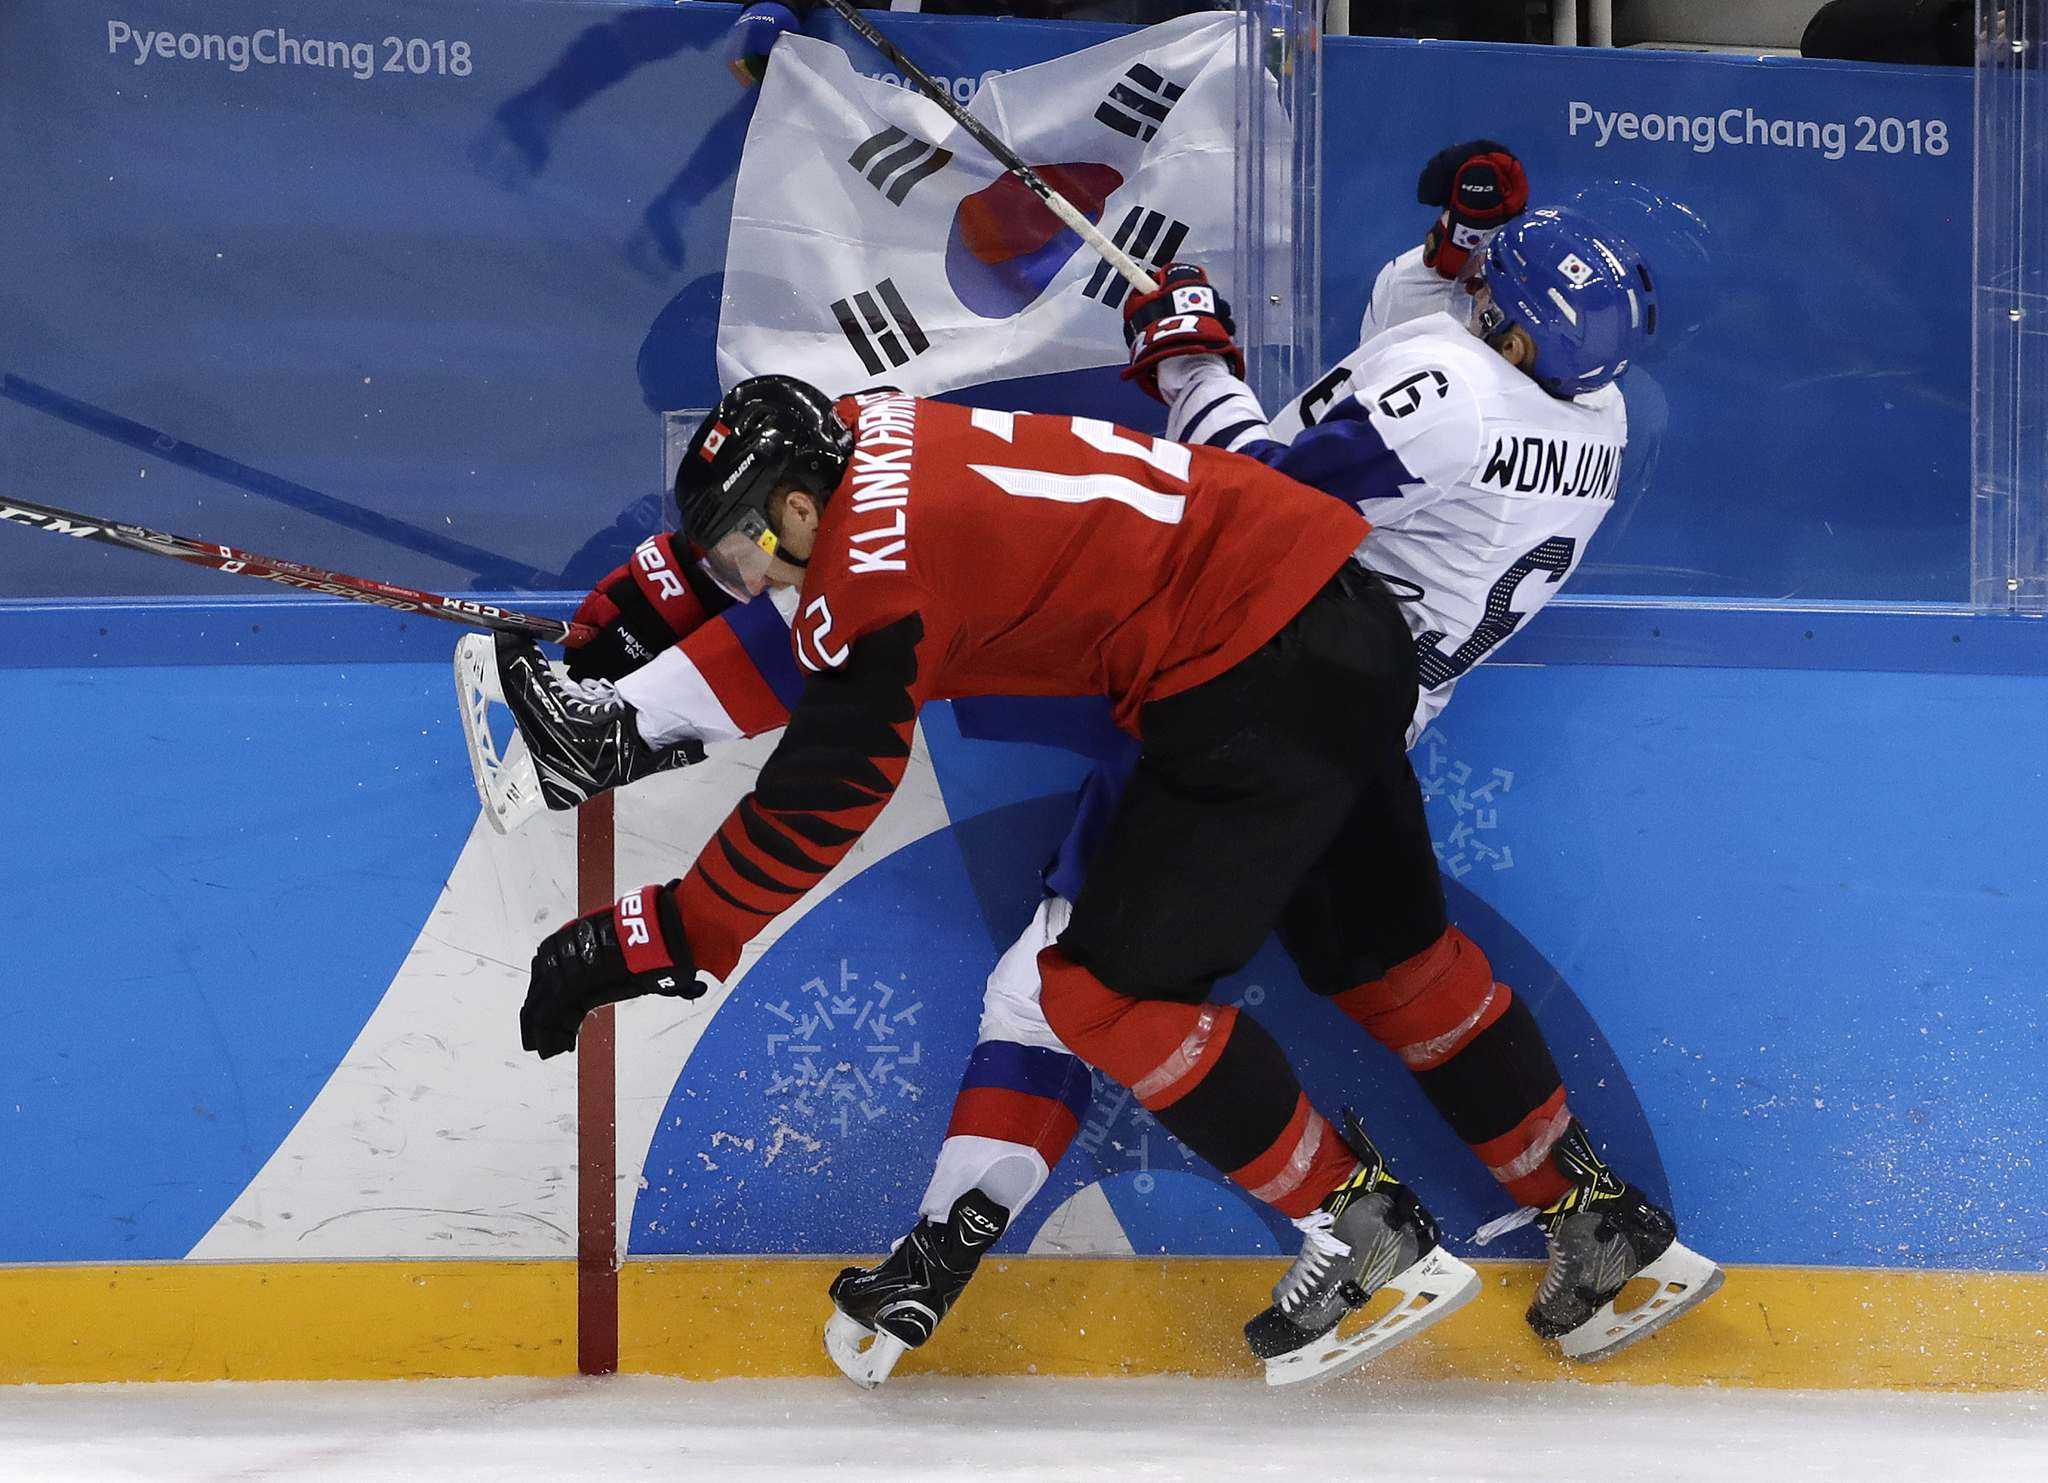 Matt Slocum / The Associated Press</p><p>Rob Klinkhammer (12), of Canada, checks Kim Won-jun (6), of South Korea, during the third period of the preliminary round of the men's hockey game at the 2018 Winter Olympics in Gangneung, South Korea, Sunday, Feb. 18, 2018.</p></p>